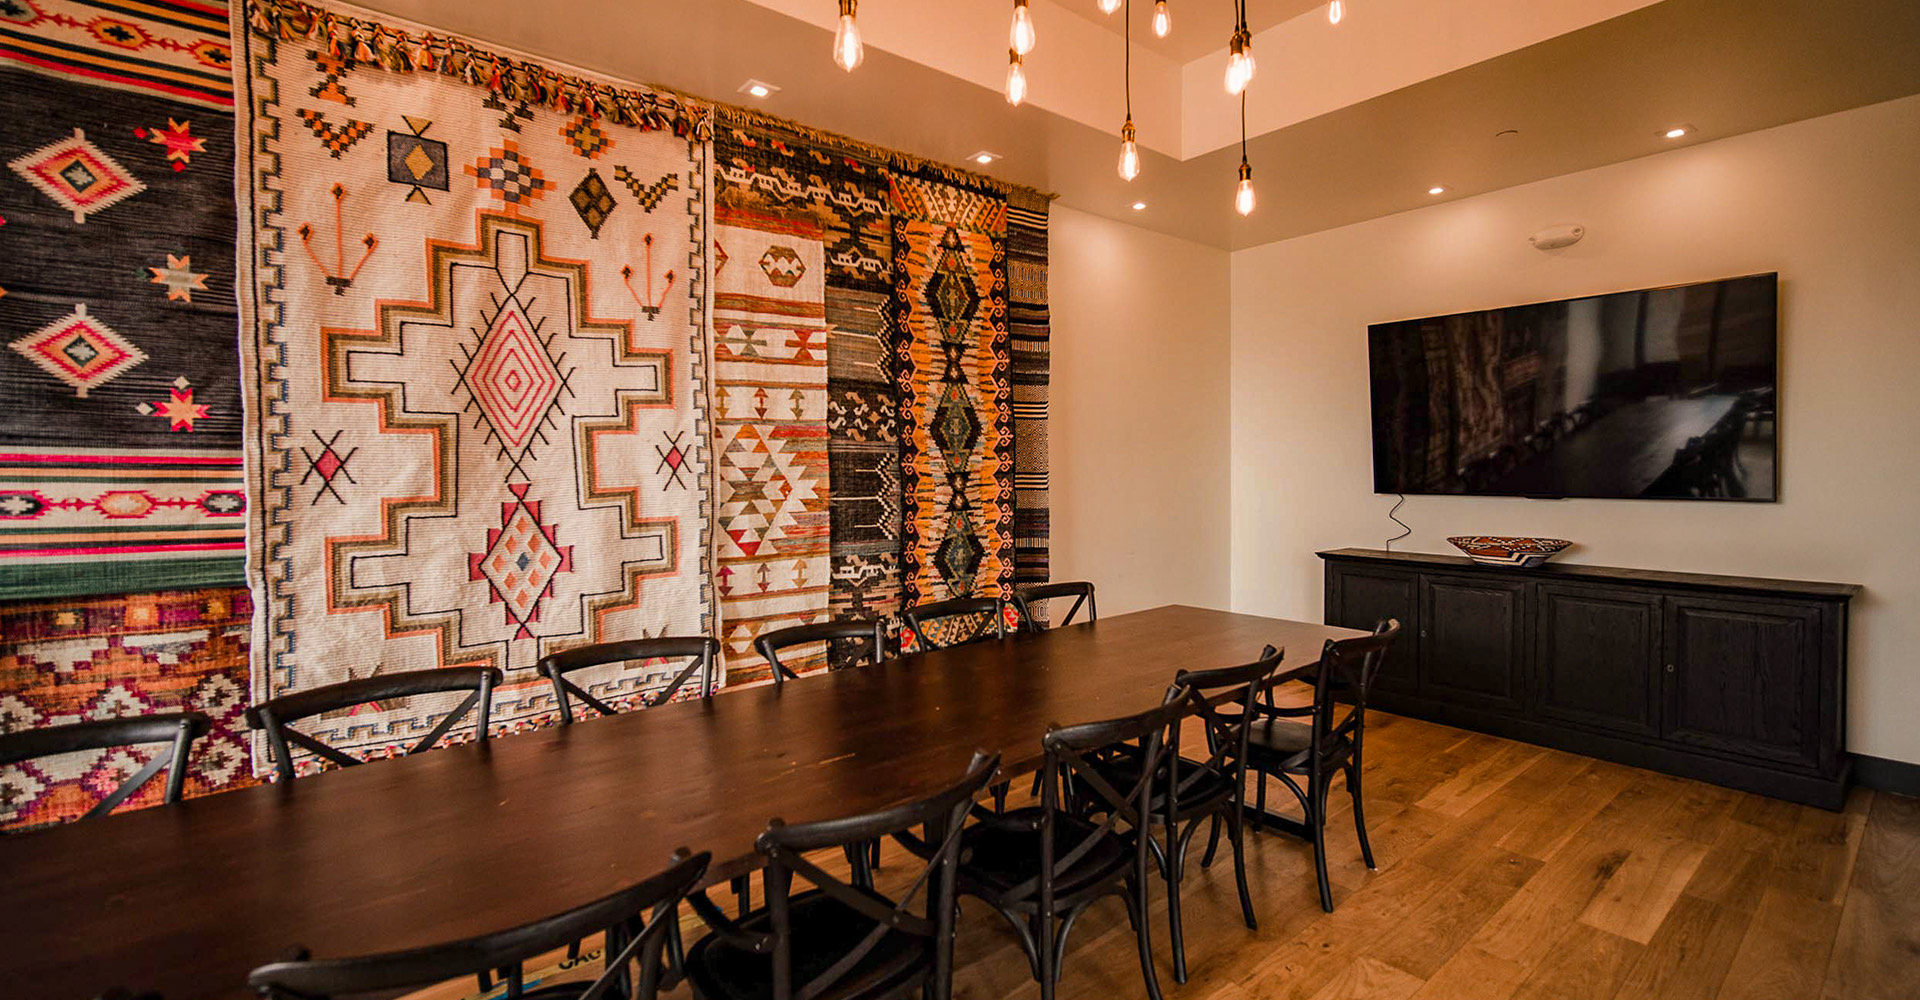 long wooden table in front of a wall with tribal rugs